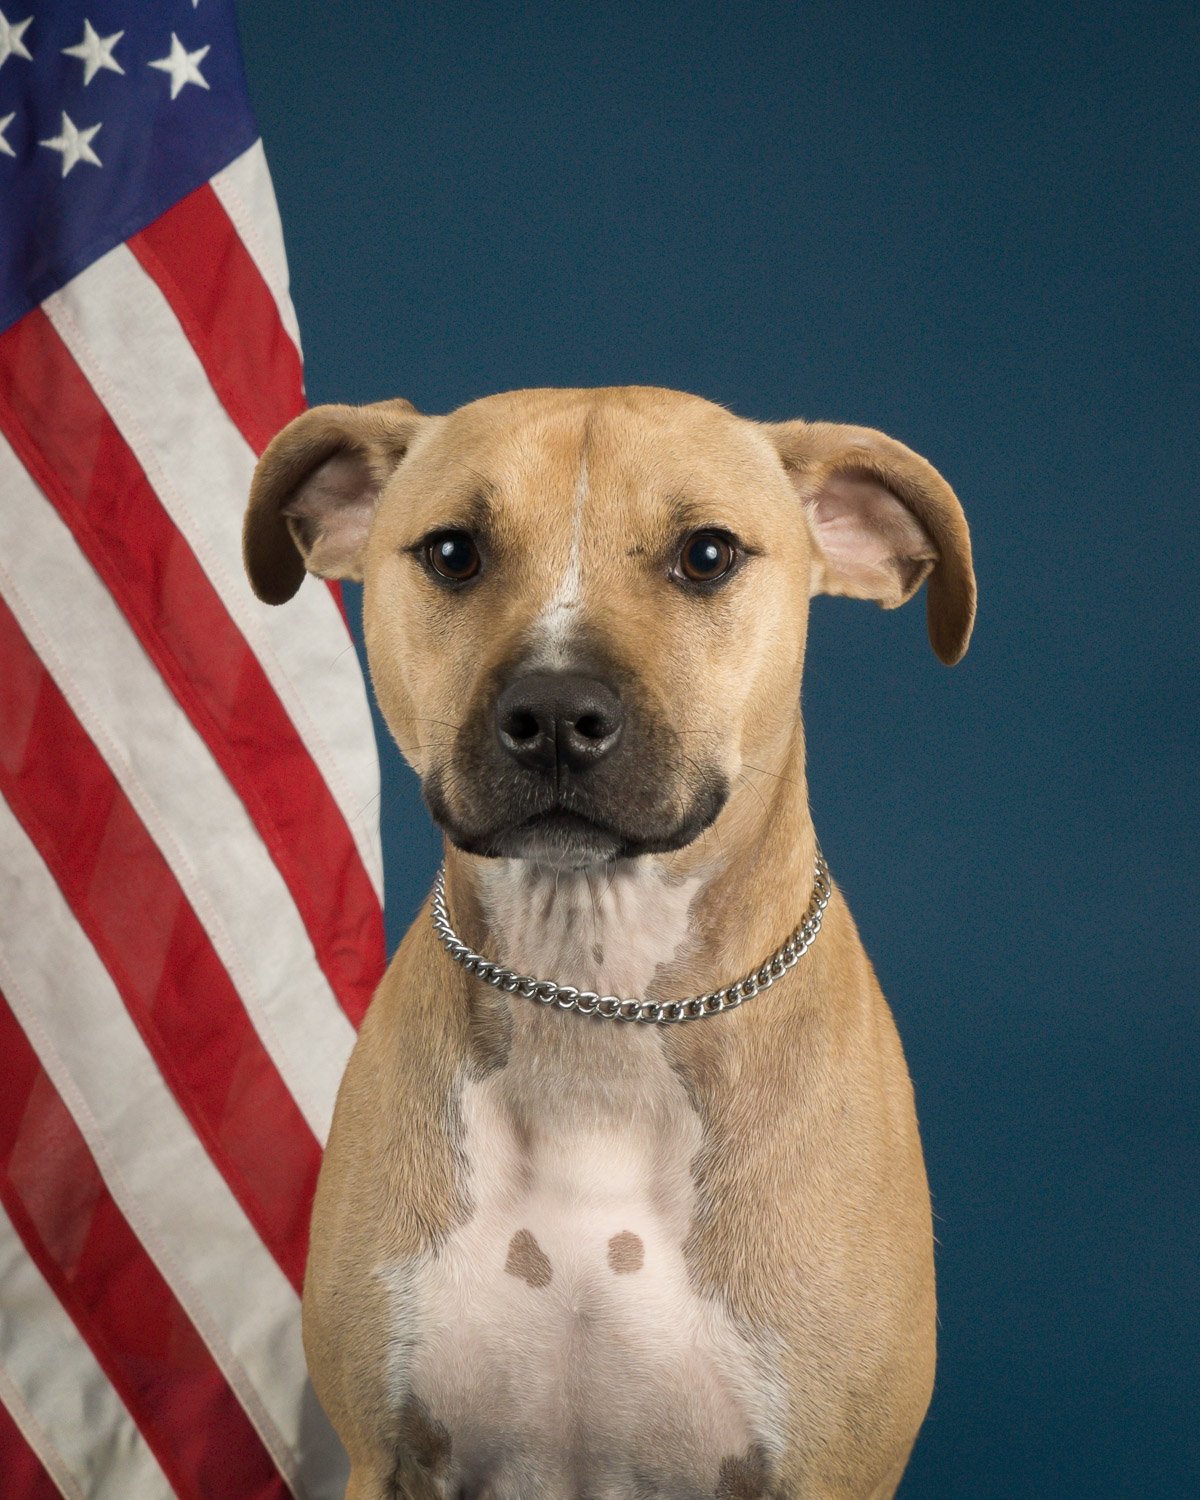 Capture you pet's political head shot with the American flag... just in time for the election.